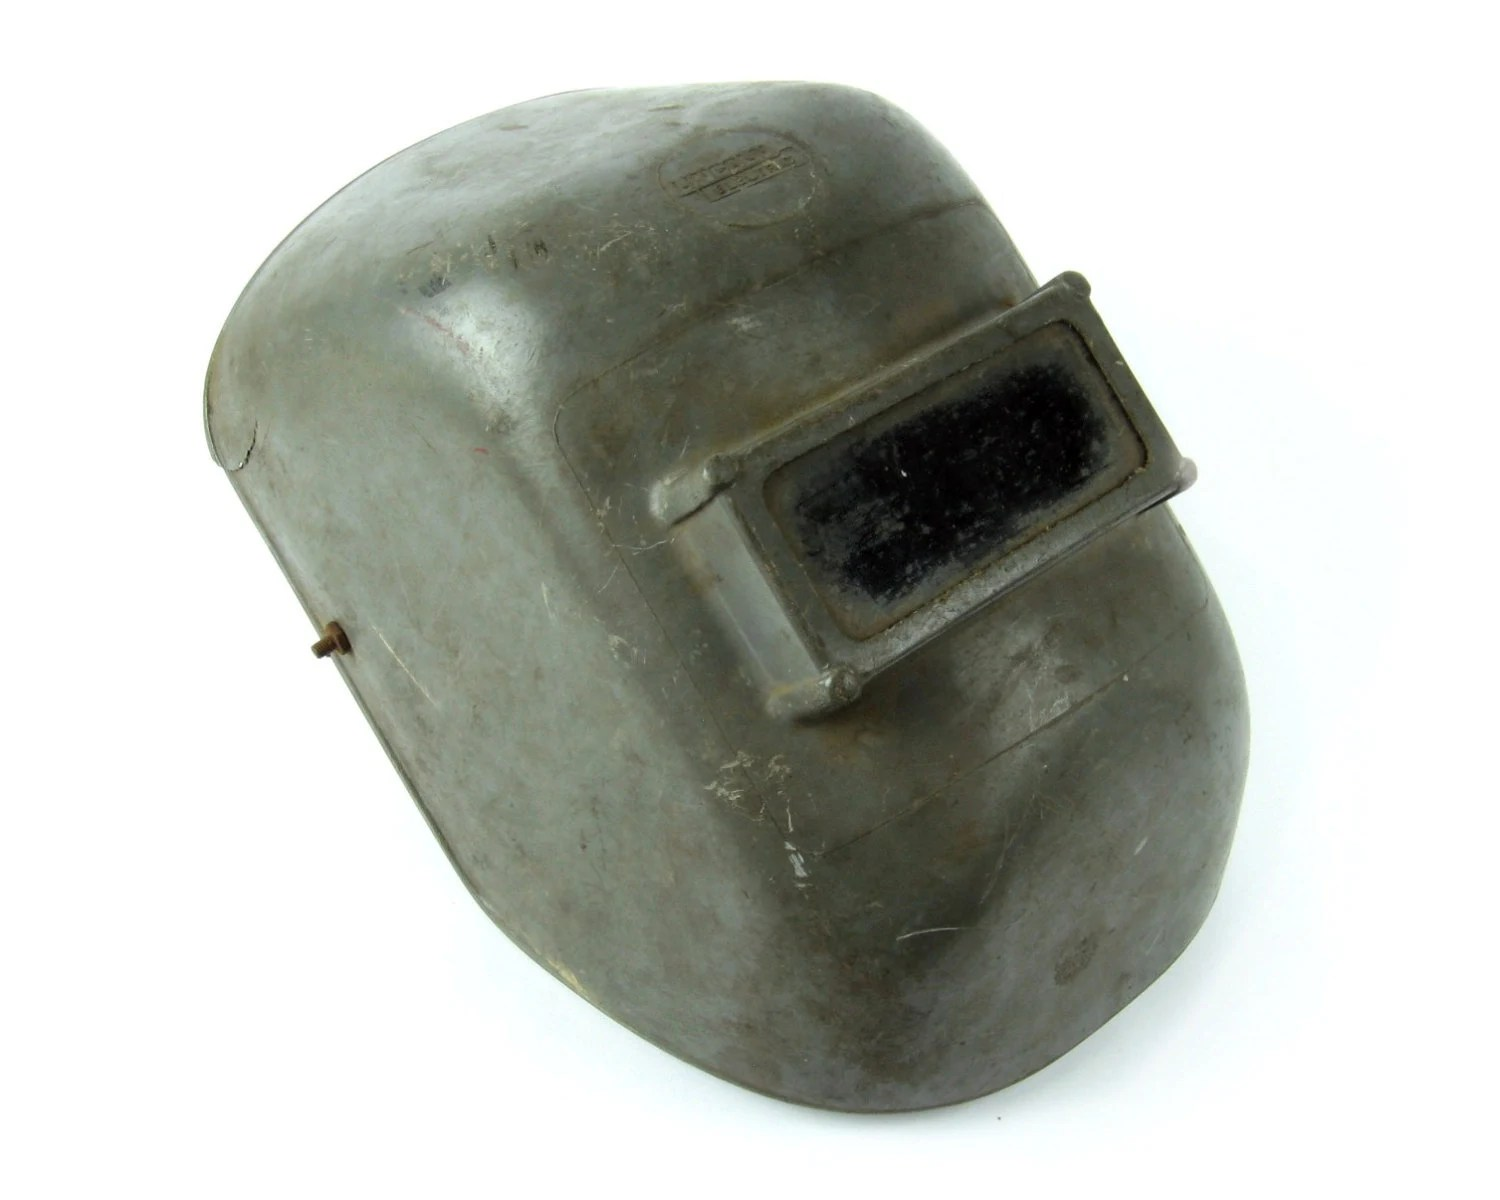 Lincoln Welders For Sale >> Vintage 1950s Welding Helmet / Welders Mask / Lincoln ...